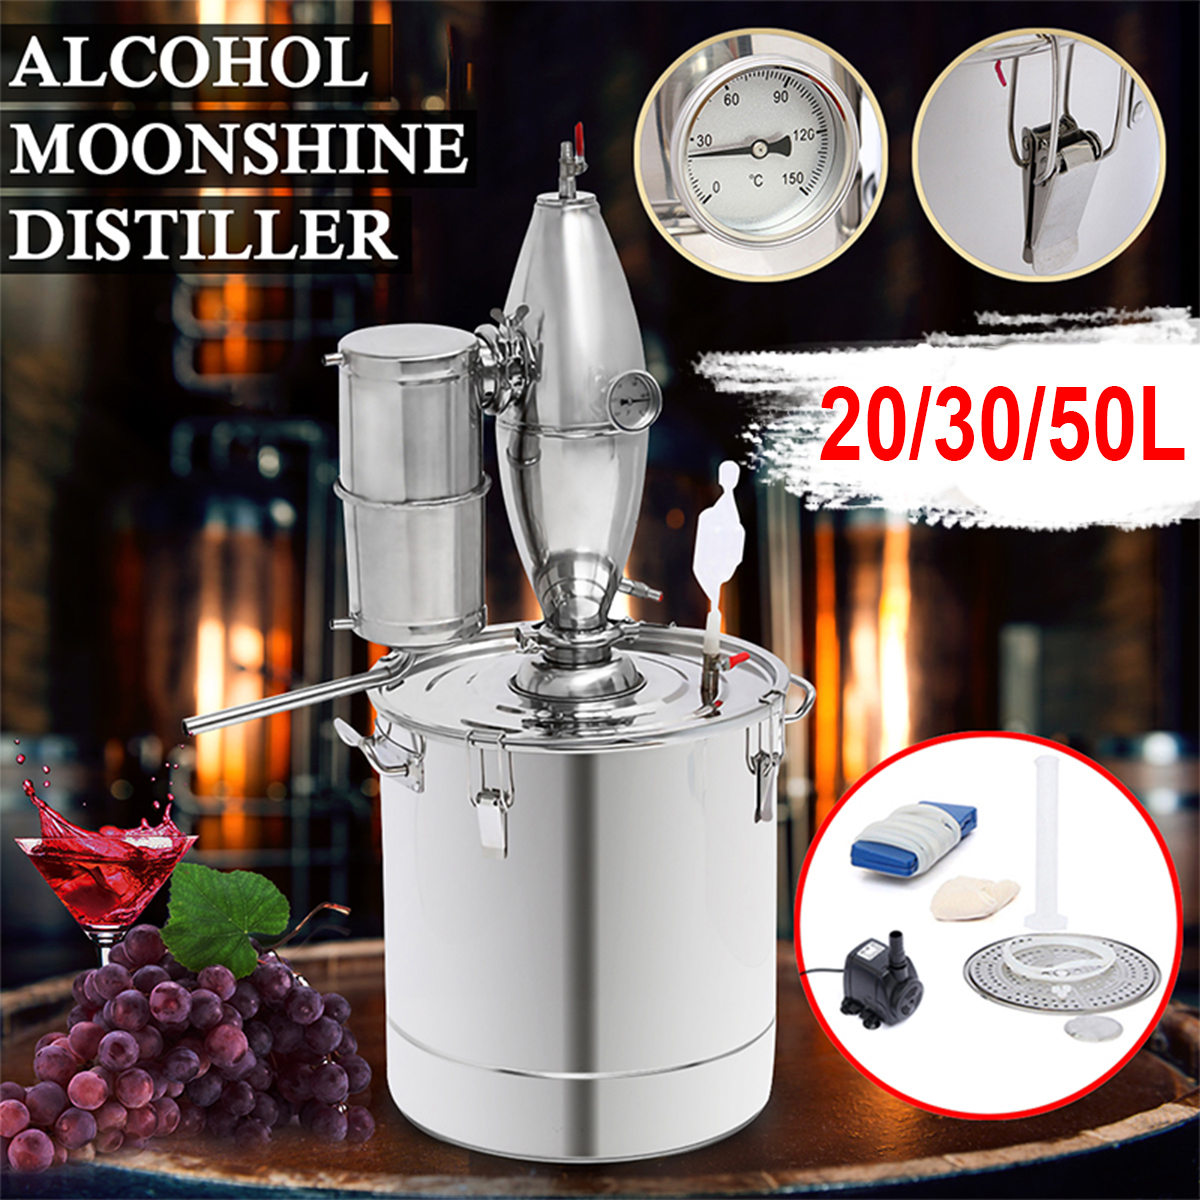 20/30/50L Household Moonshine Distiller Boiler Cooler Stainless Steel Copper Ethanol Alcohol Water Wine Essential Oil Brewing